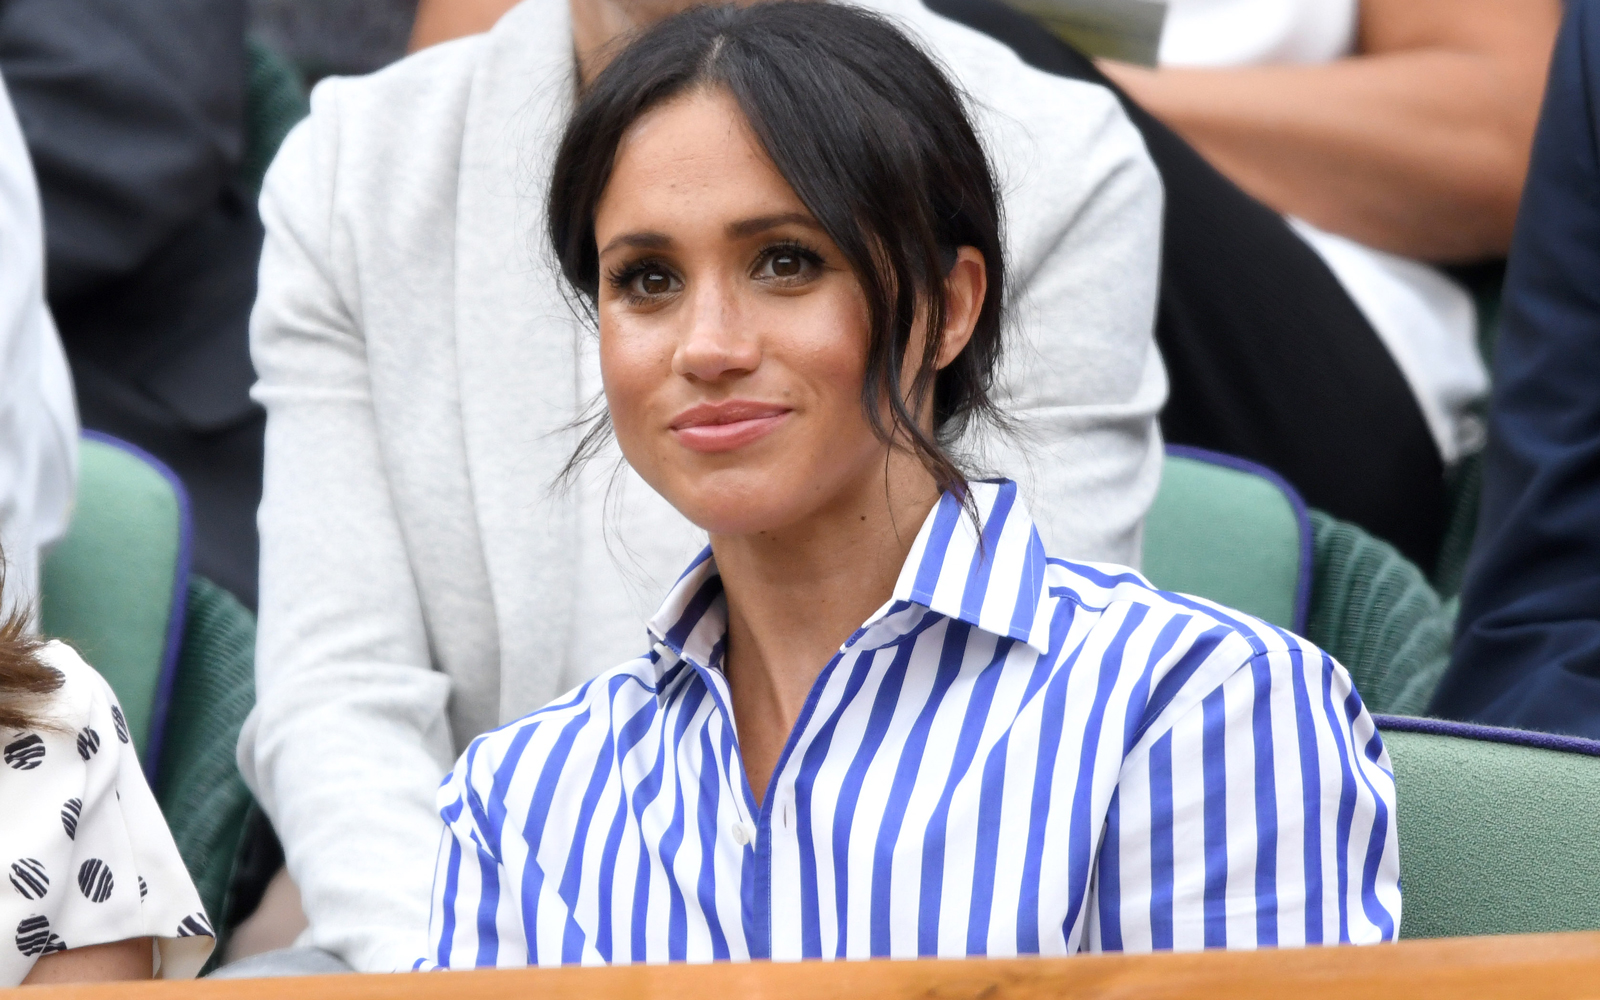 Meghan Markle May Make a Rare Appearance at Wimbledon to Watch Serena Williams